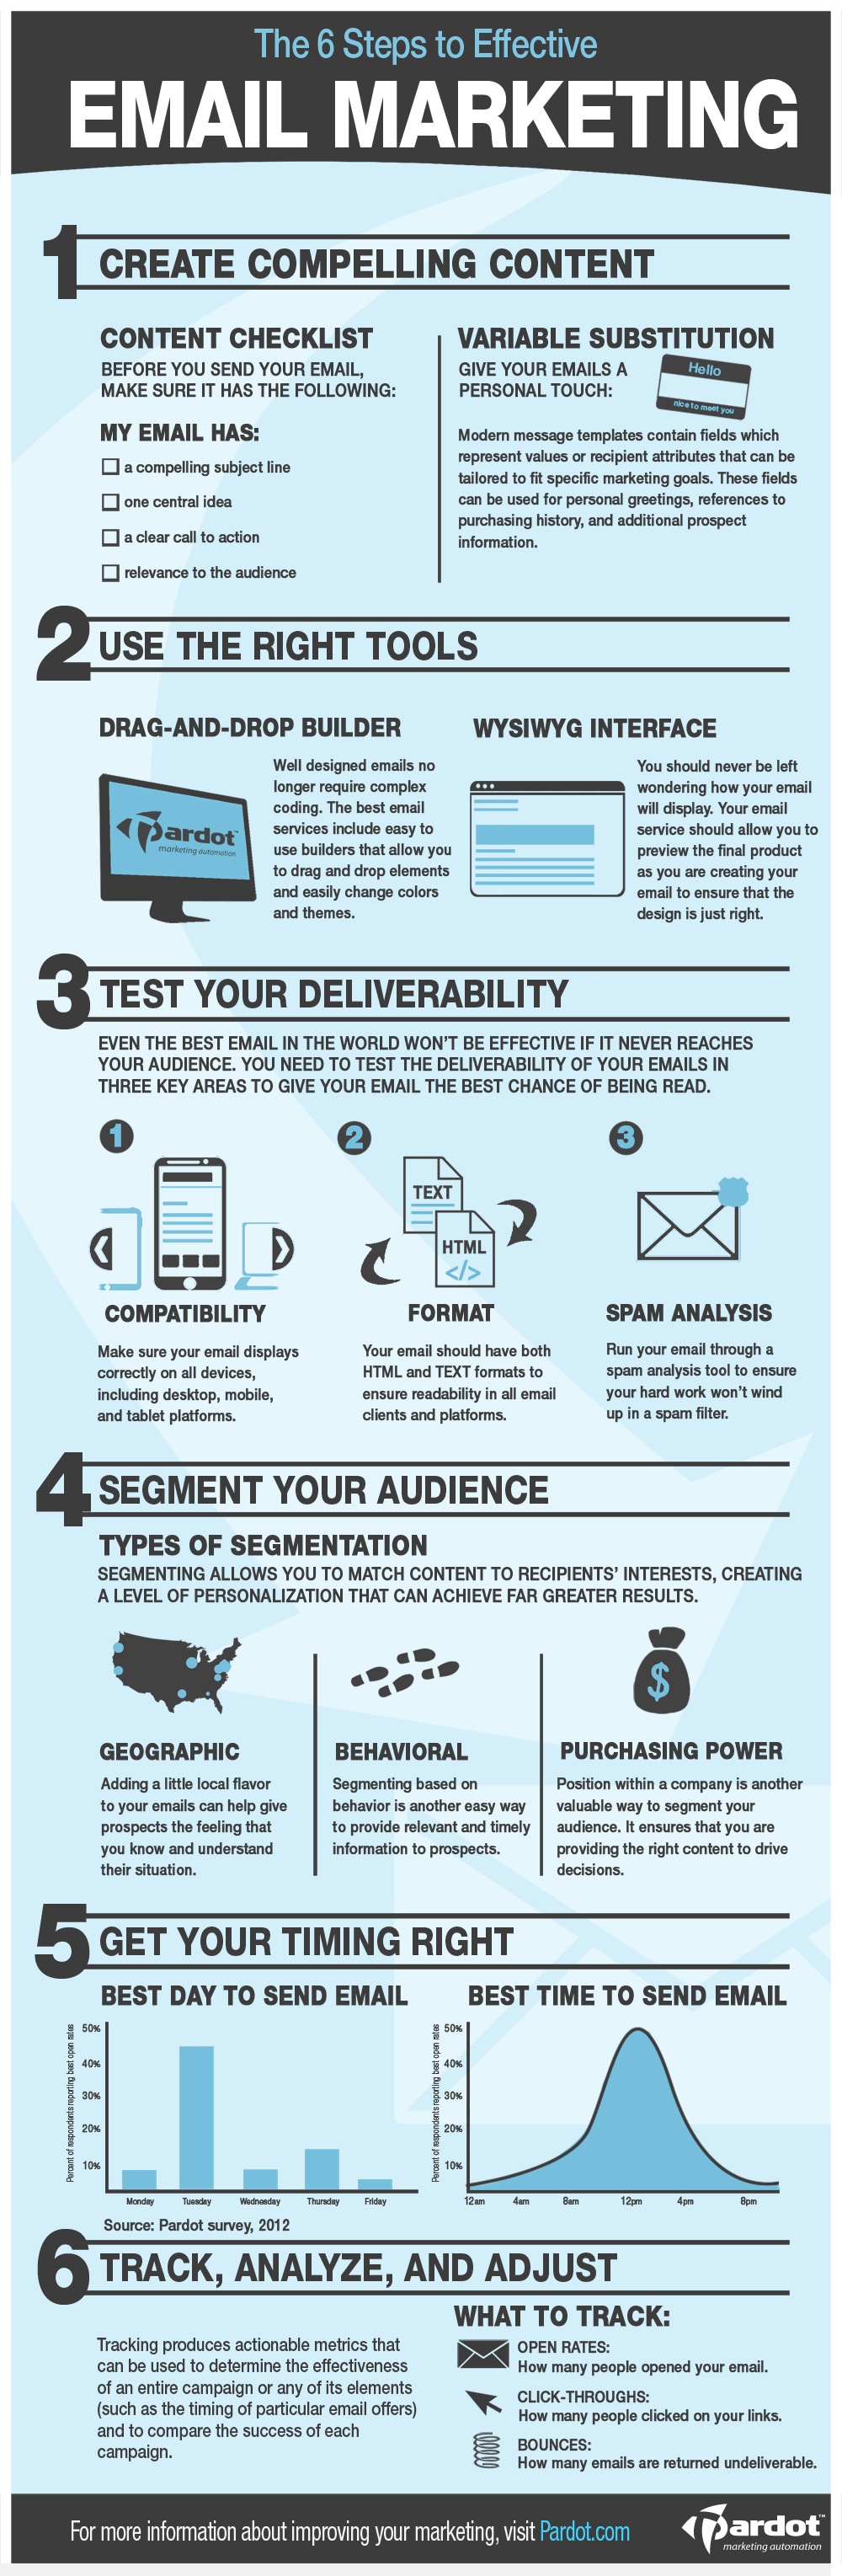 6-steps-to-effective-email-marketing_5035177eee13b